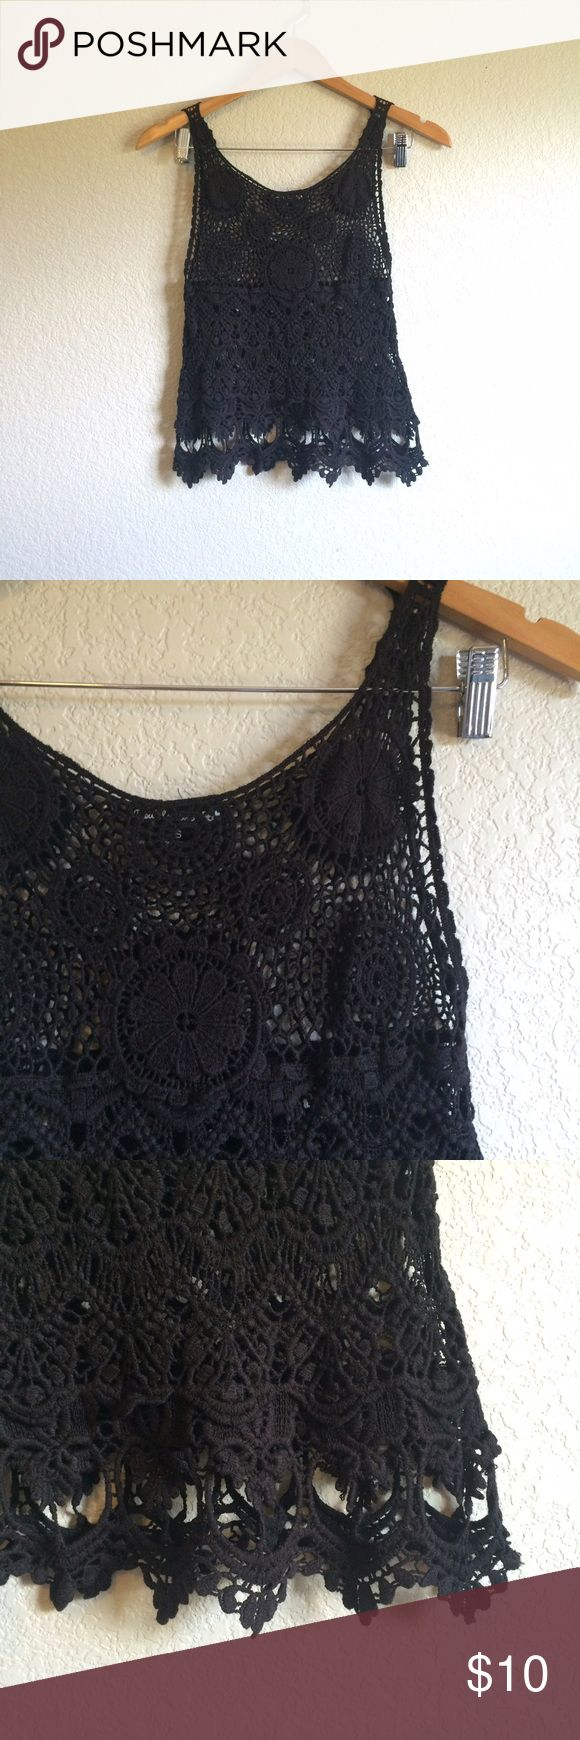 Double Zero • Tank This pretty black crochet tank has a slightly cropped look and looks great layered. There are a couple of tiny imperfections (loose threads) not noticeable when worn. Double Zero Tops Tank Tops